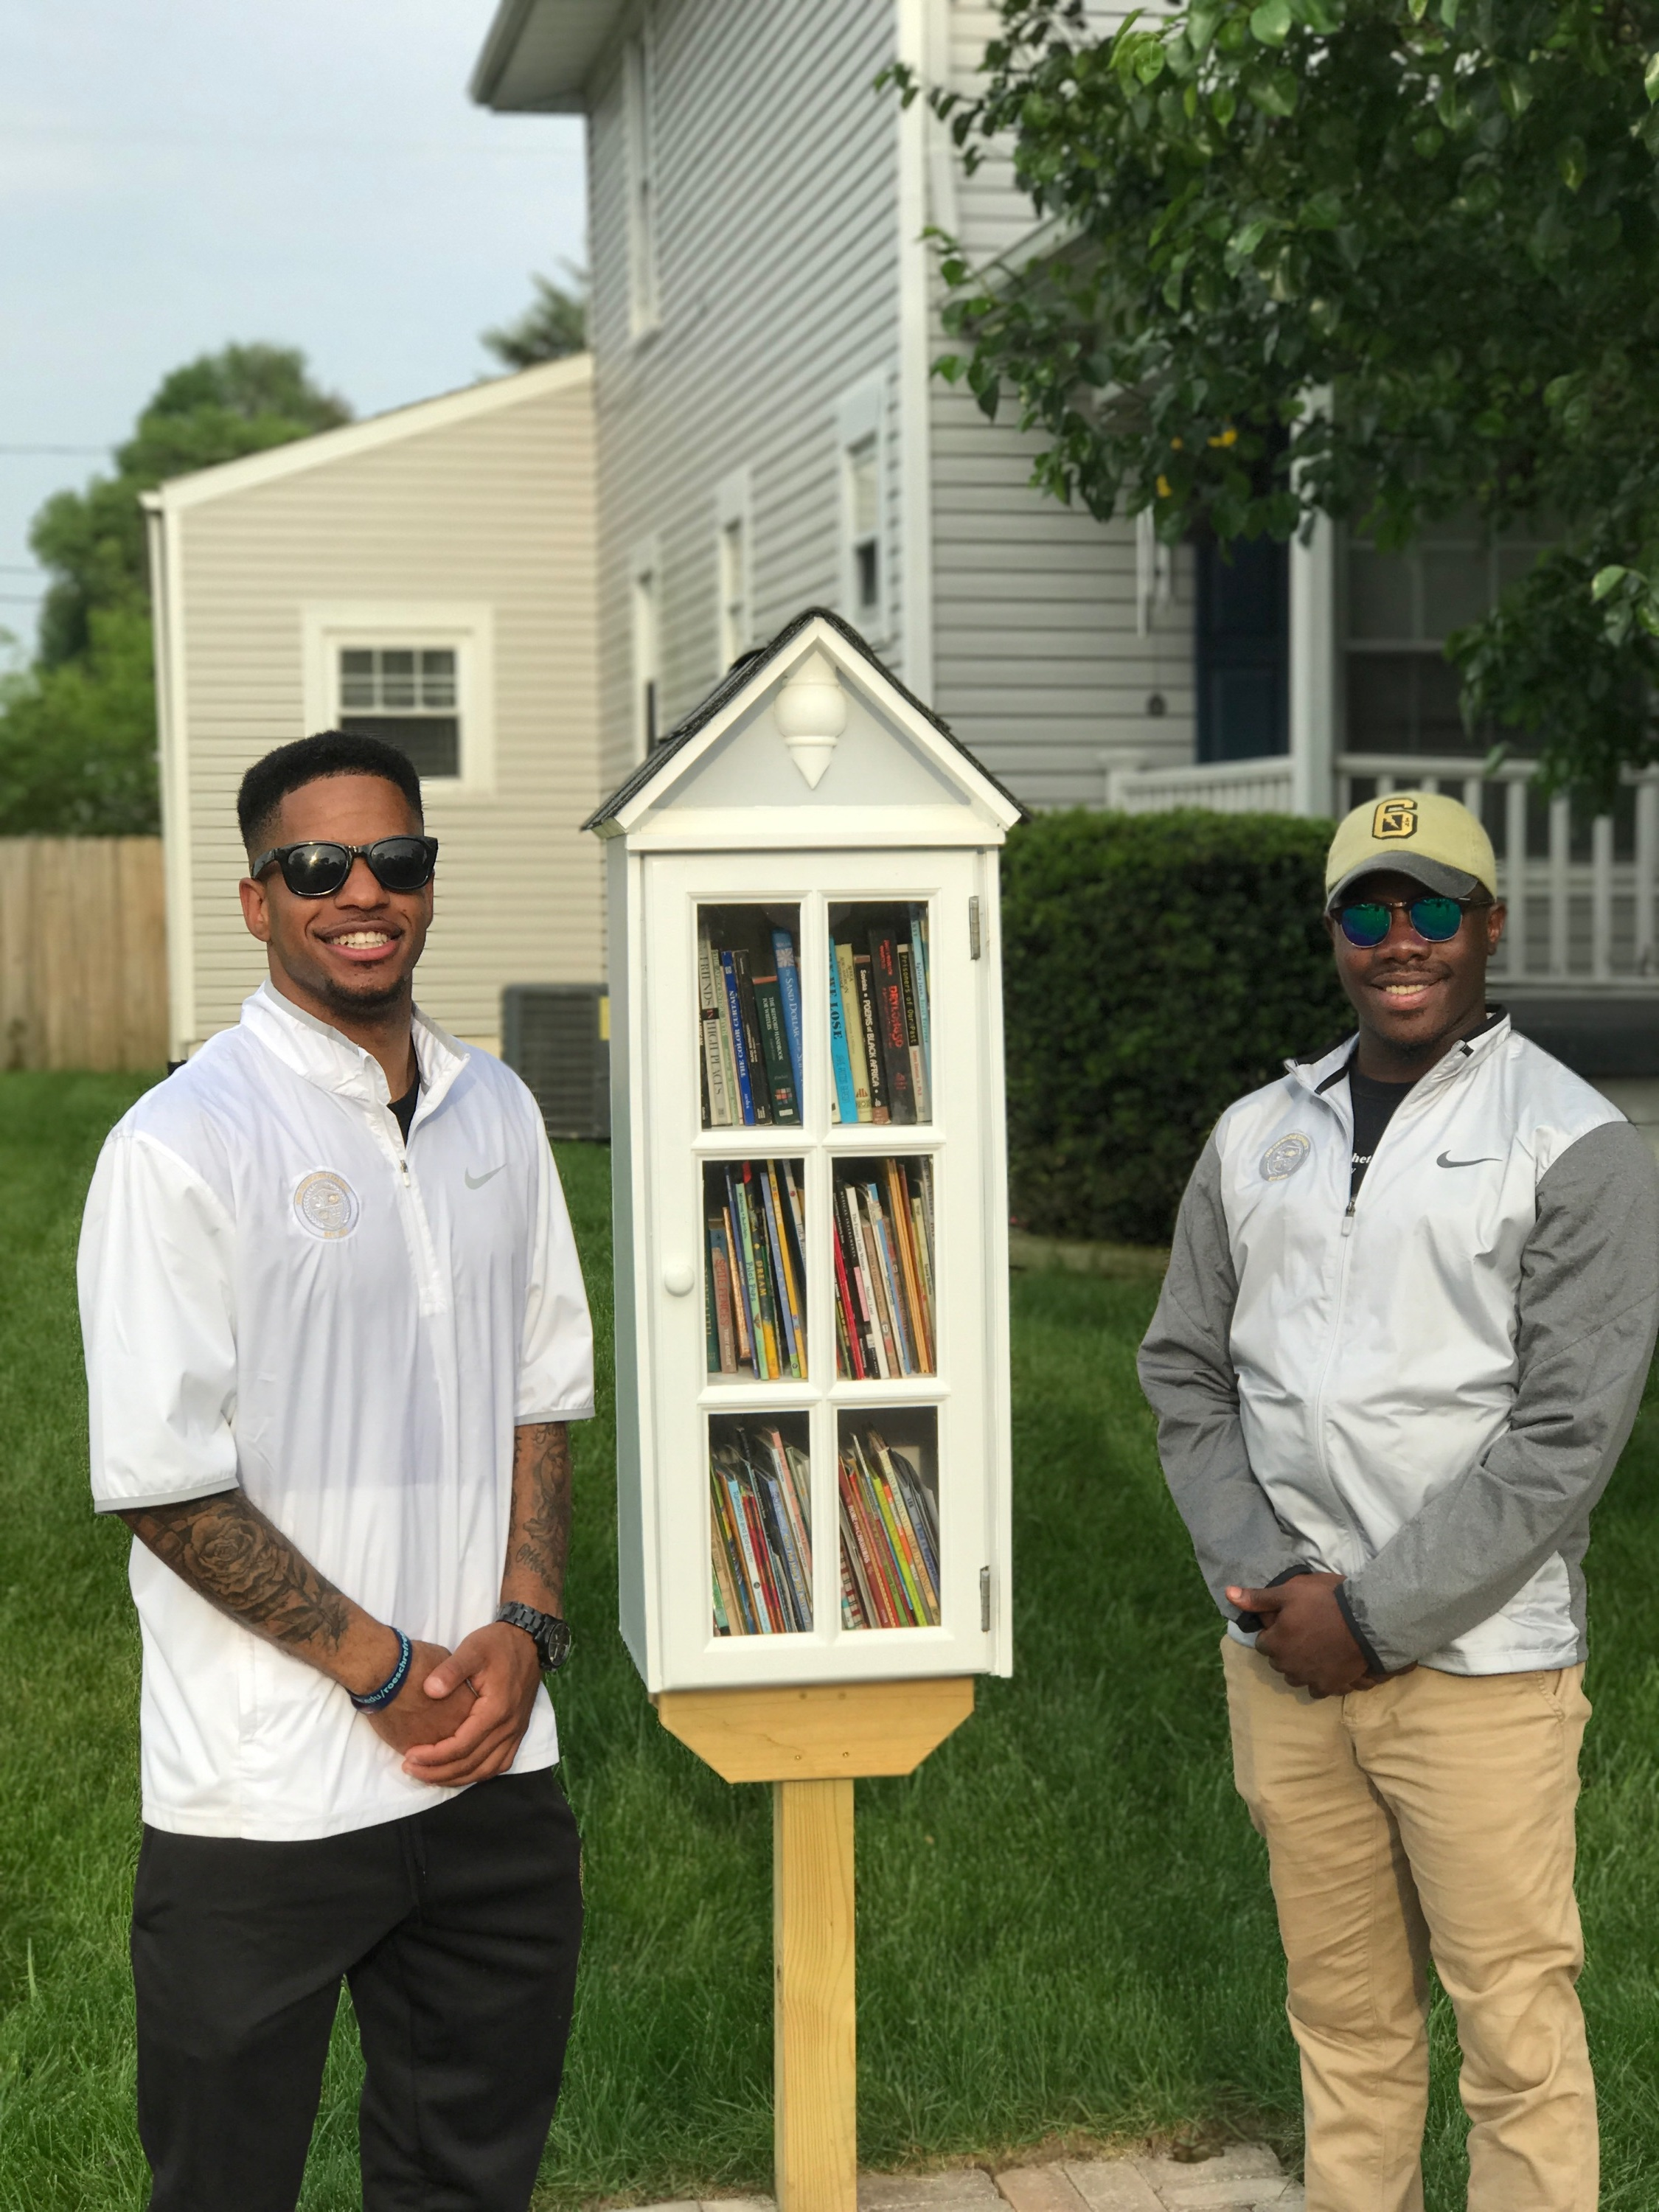 Our very first House of Knowledge is located in the Singer Neighborhood in Southern Springfield,   at the residence of Co-Founder Karlos L. Marshall.